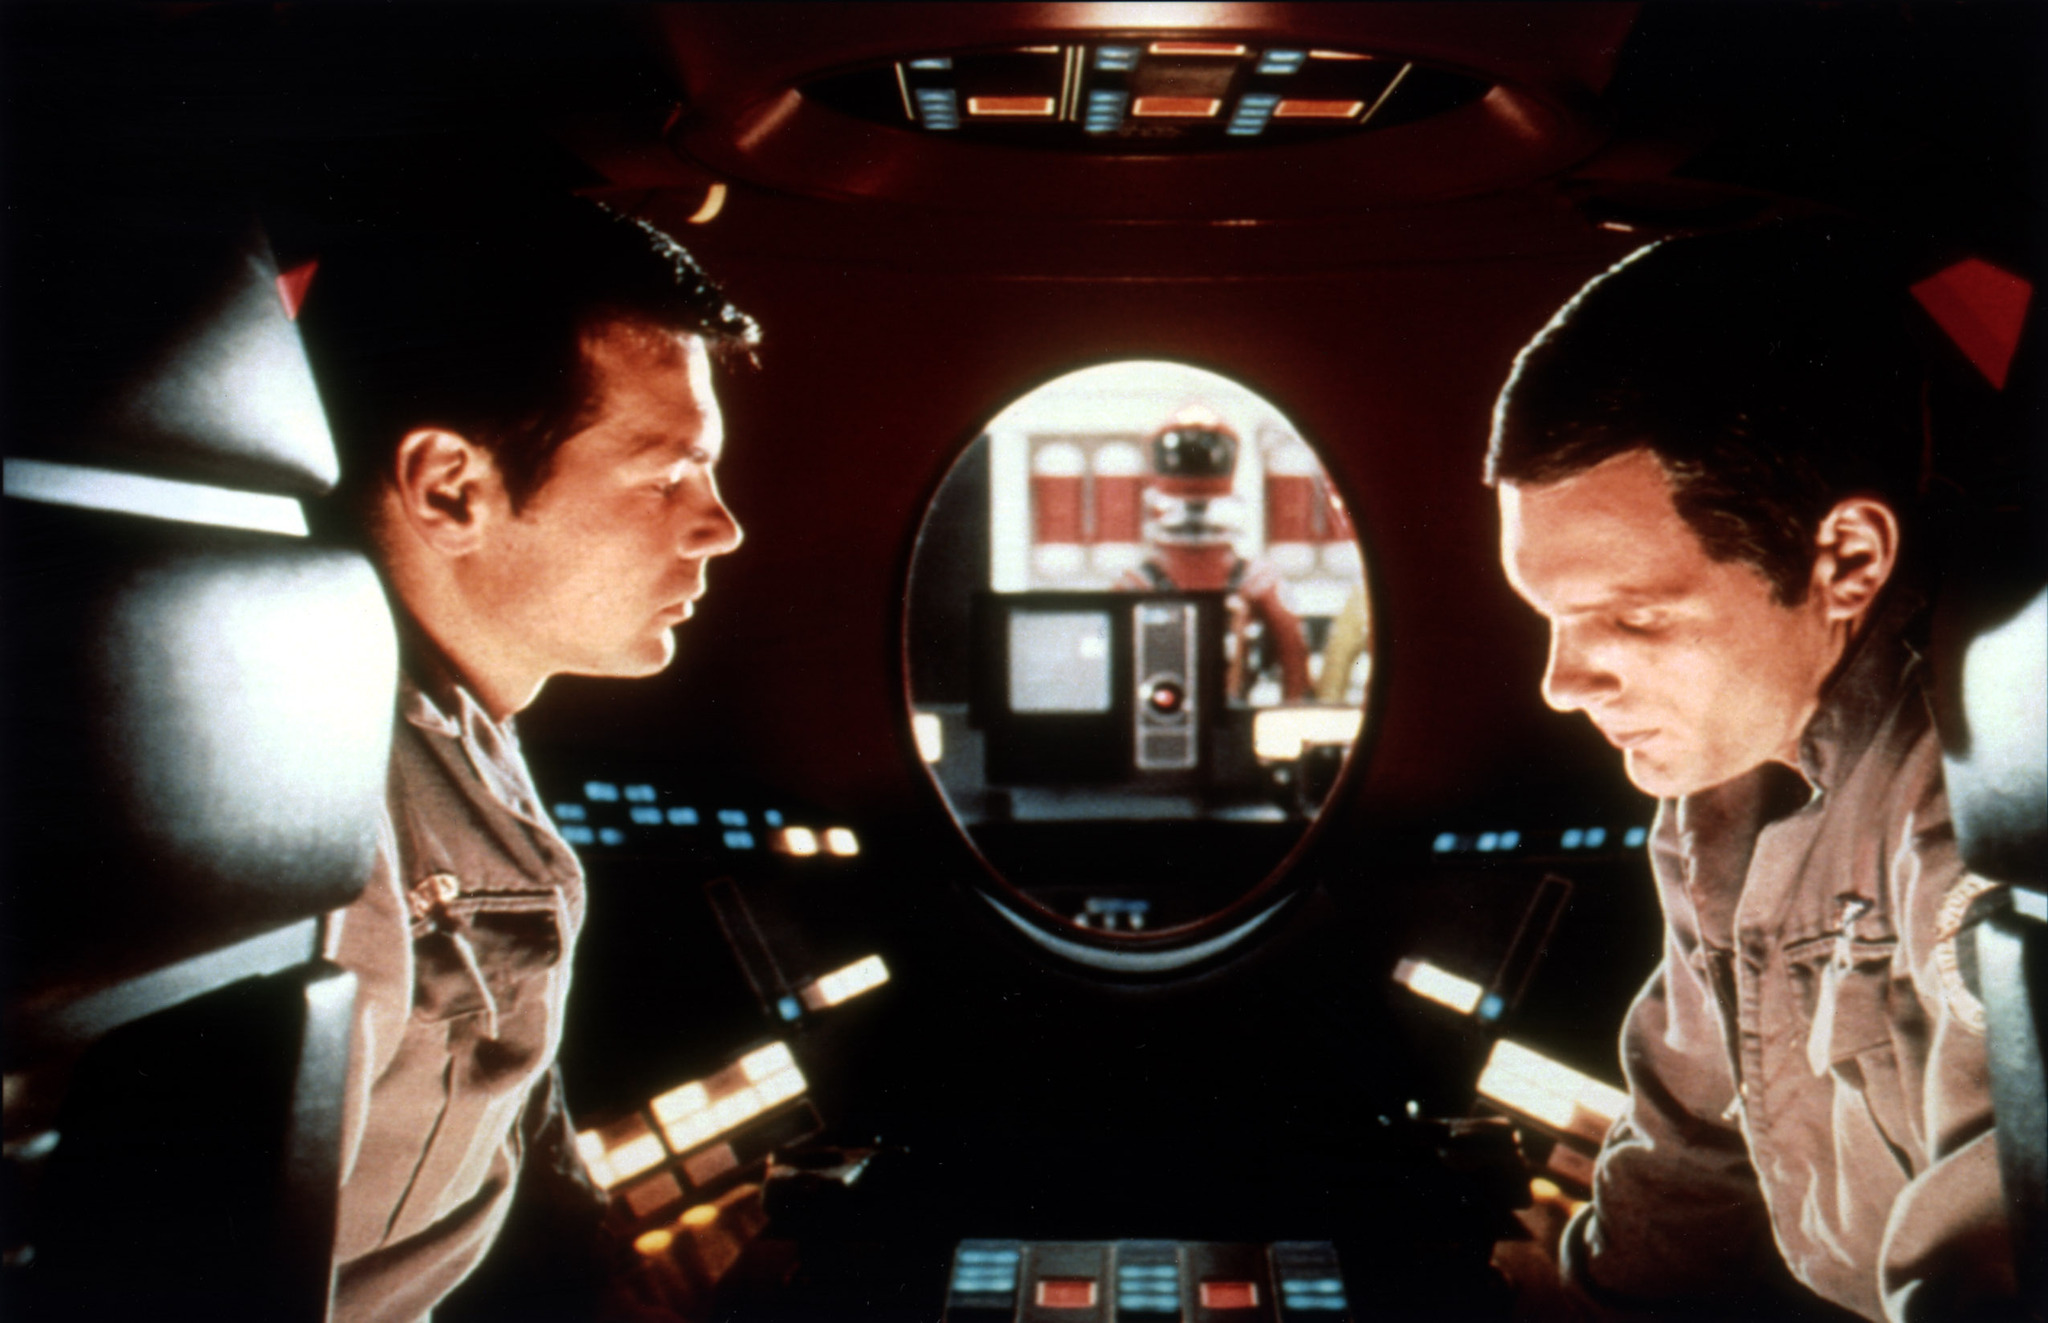 Keir Dullea and Gary Lockwood in 2001: A Space Odyssey (1968)